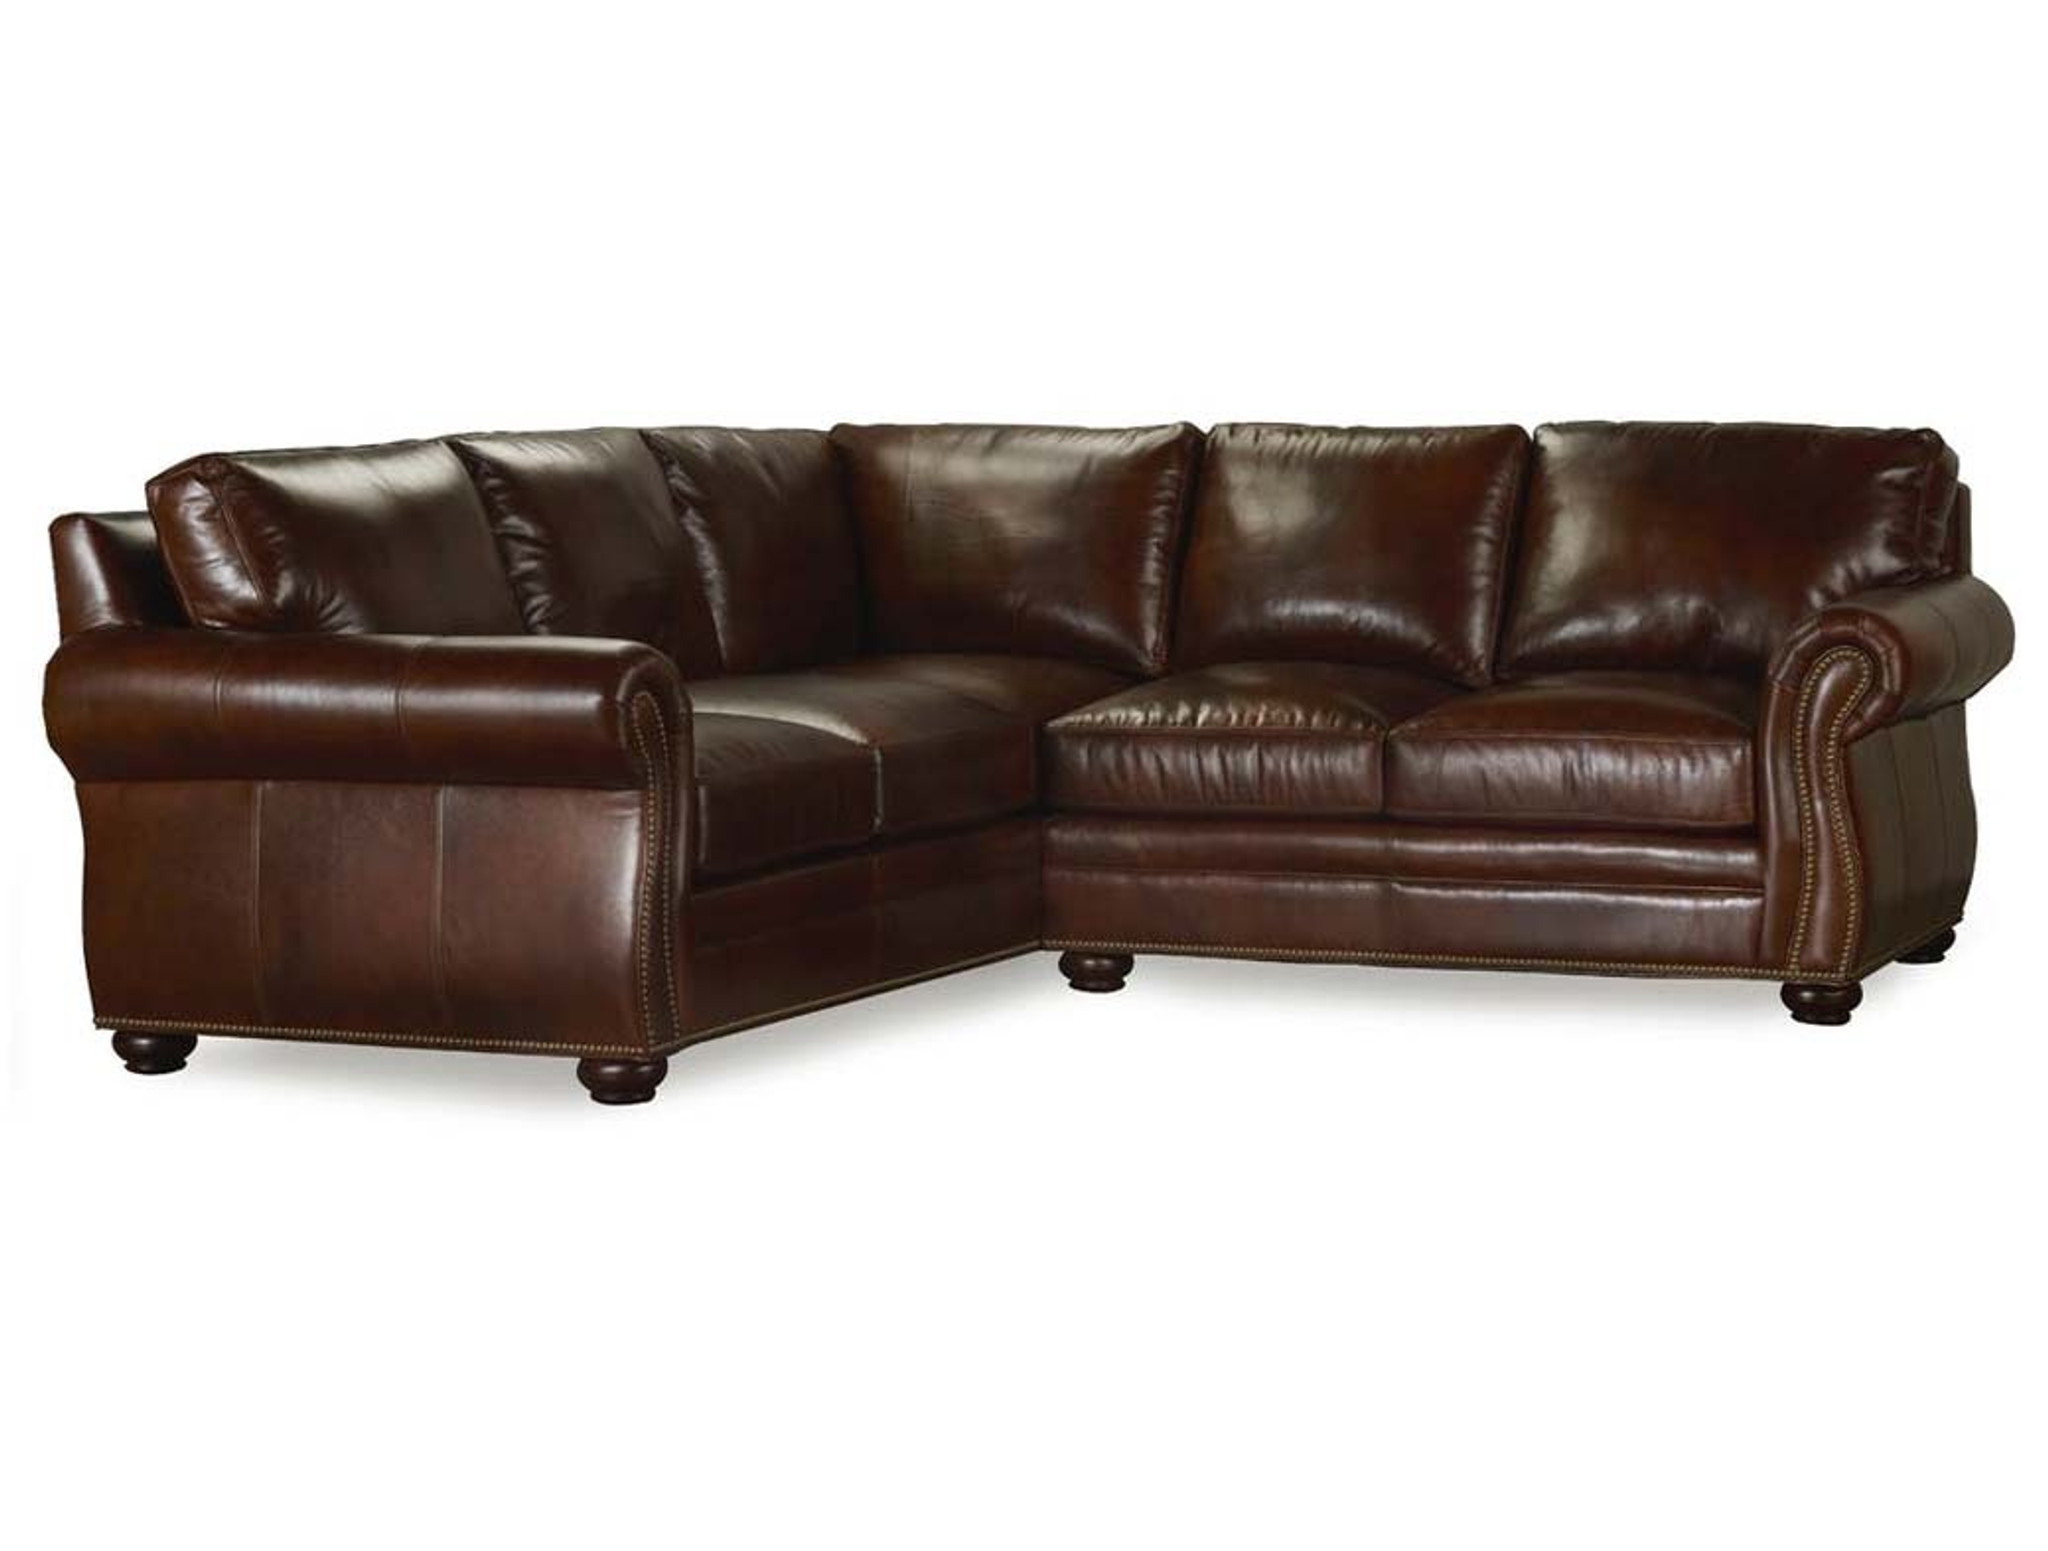 Bon 221 Sterling Sectional 2pc Shown ...